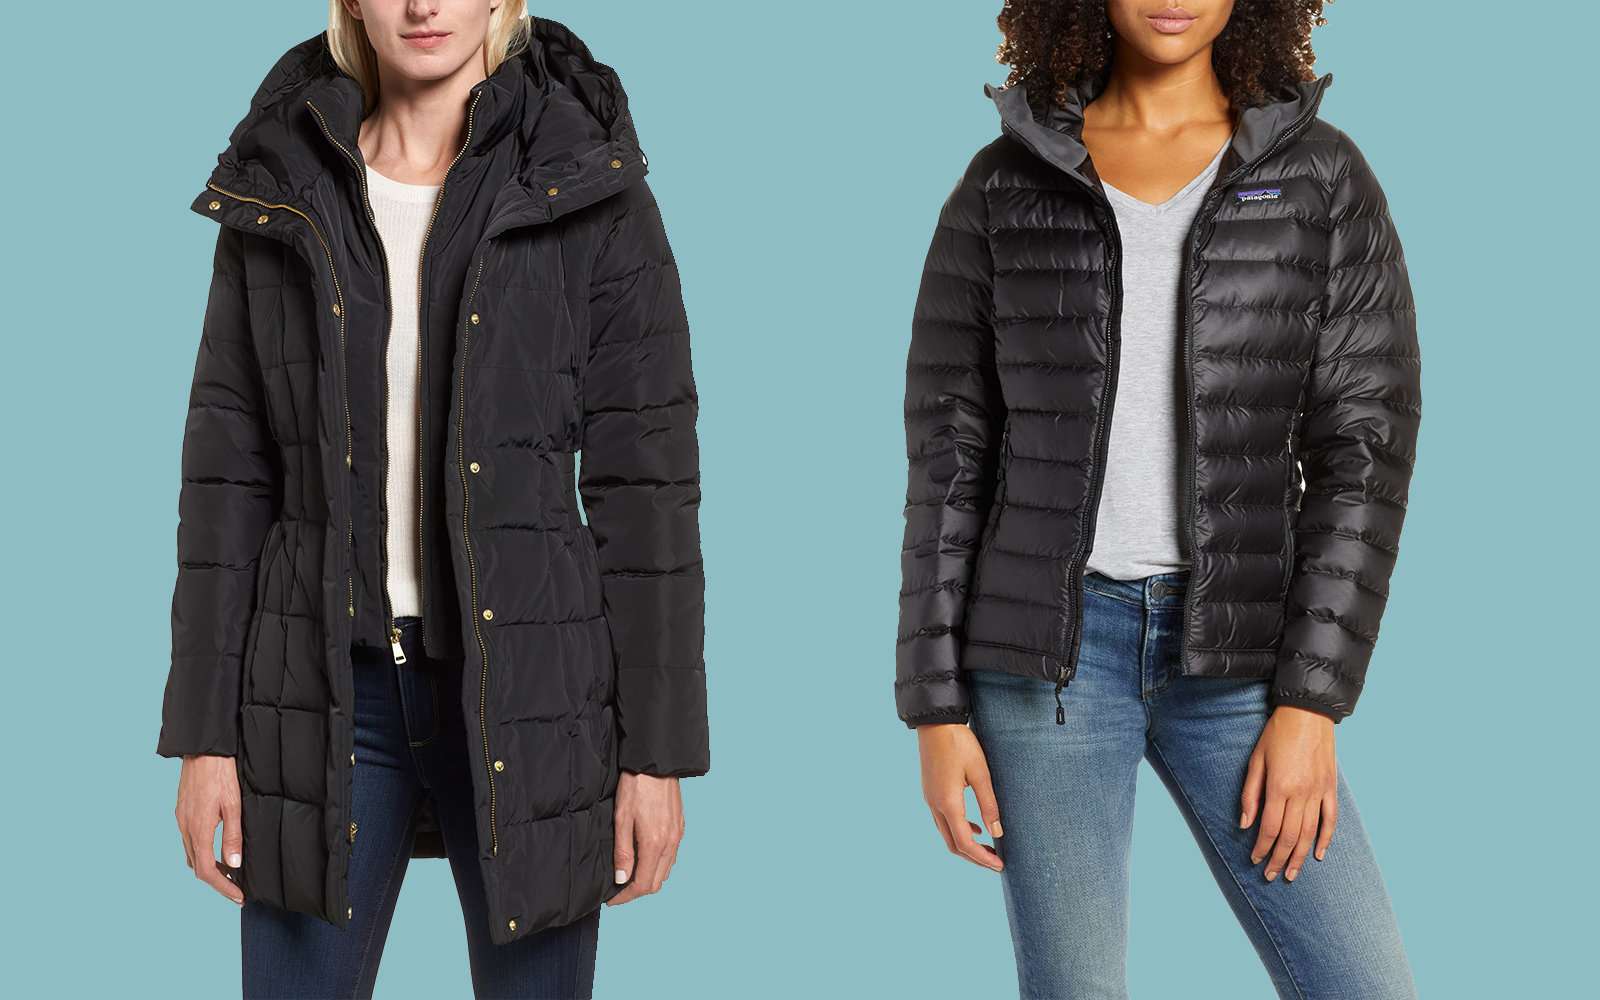 Why Extreme Winter Jackets Are Necessary?